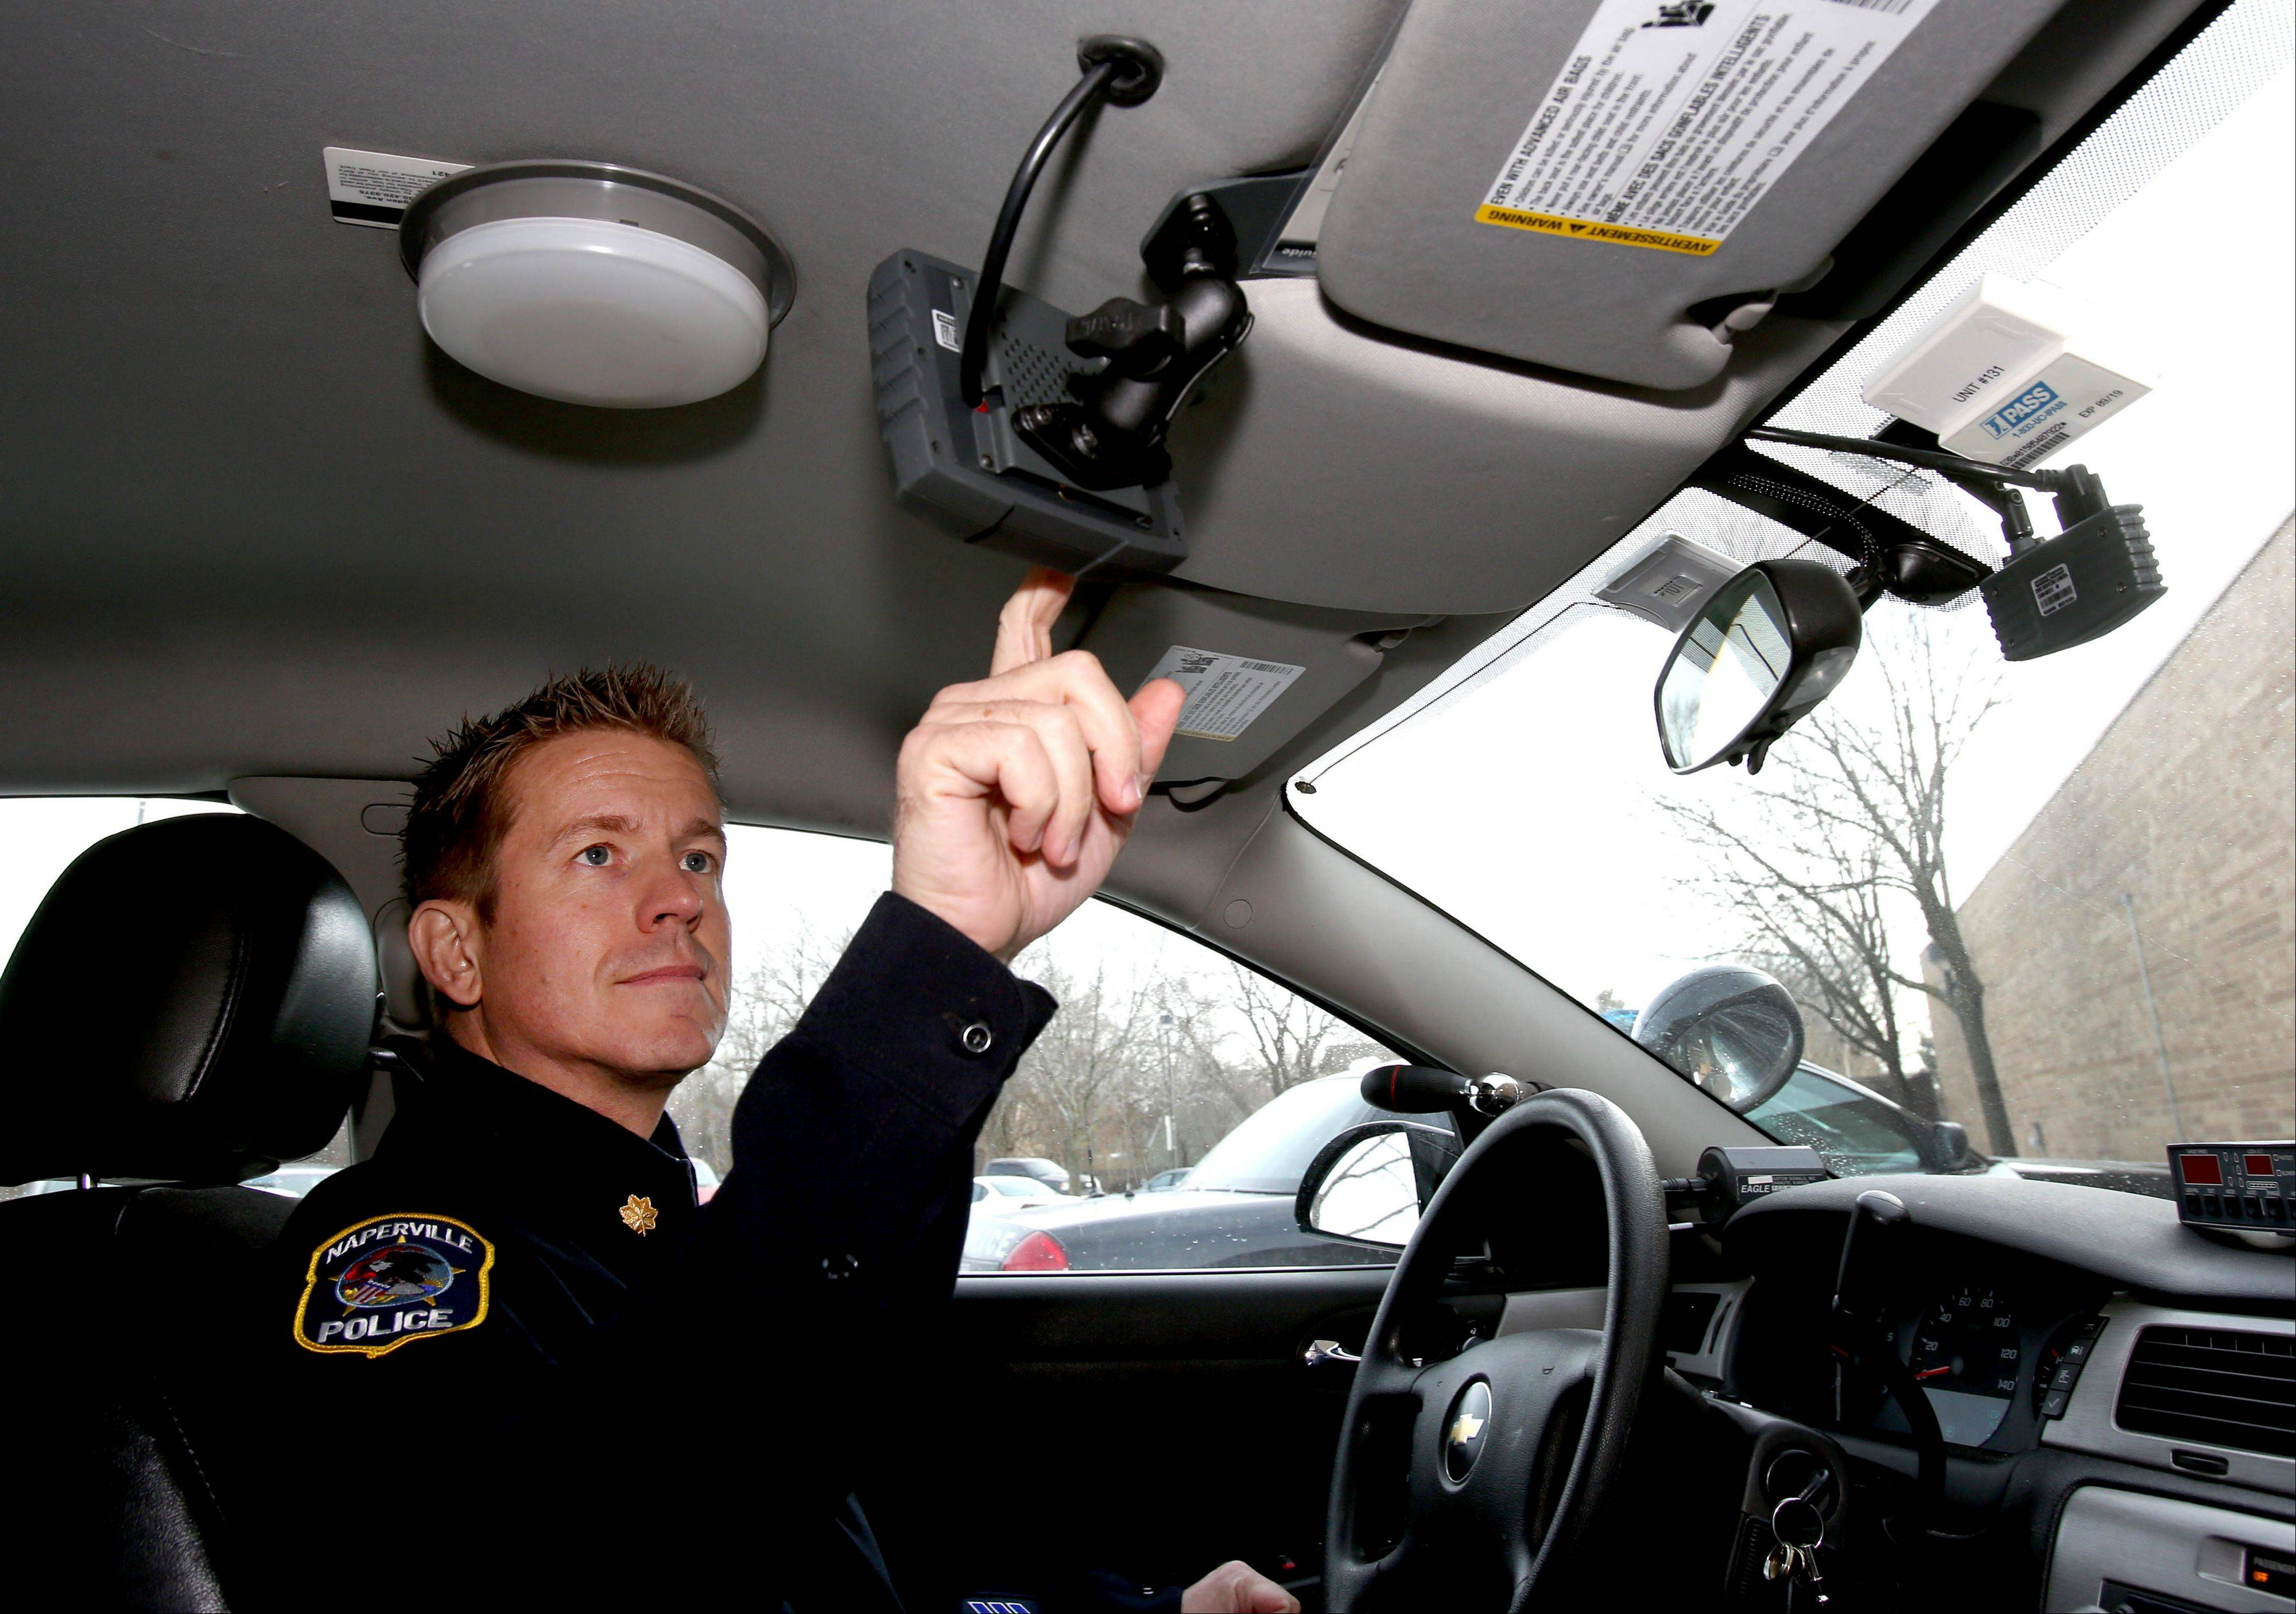 Naperville Cmdr. Jason Arres adjusts a monitor for a new camera, seen on the right, being installed in city police cars.